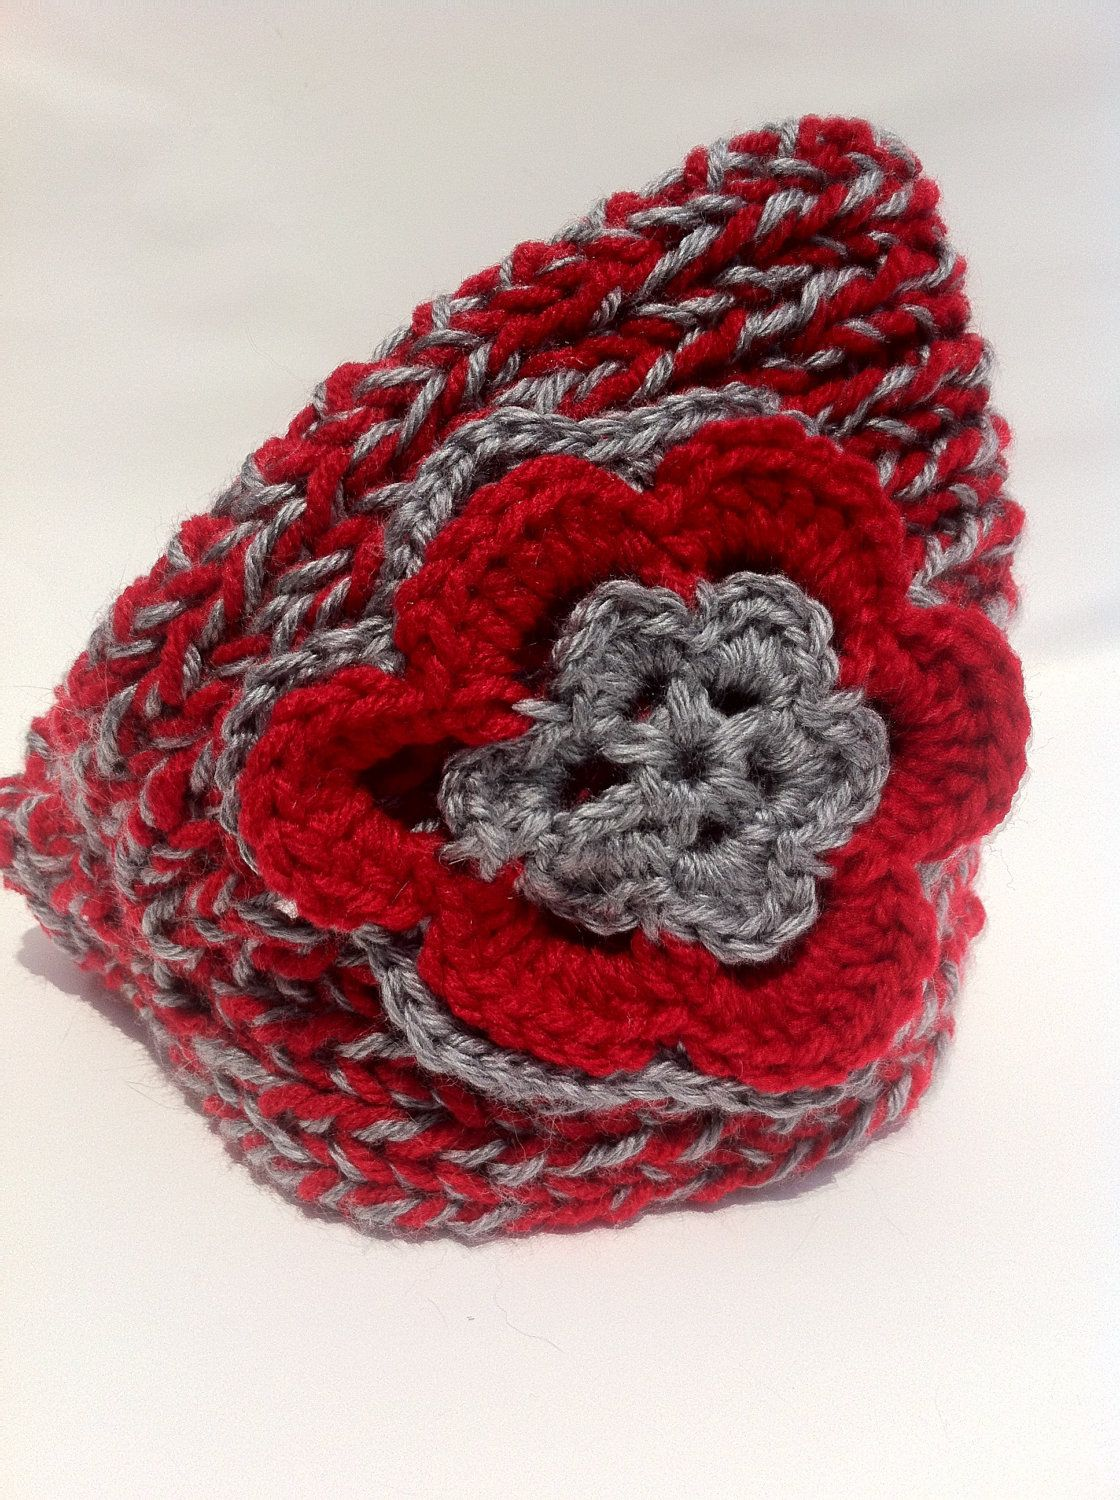 Knitted Winter Headband Red Gray Ohio State Knit Crochet Headbands